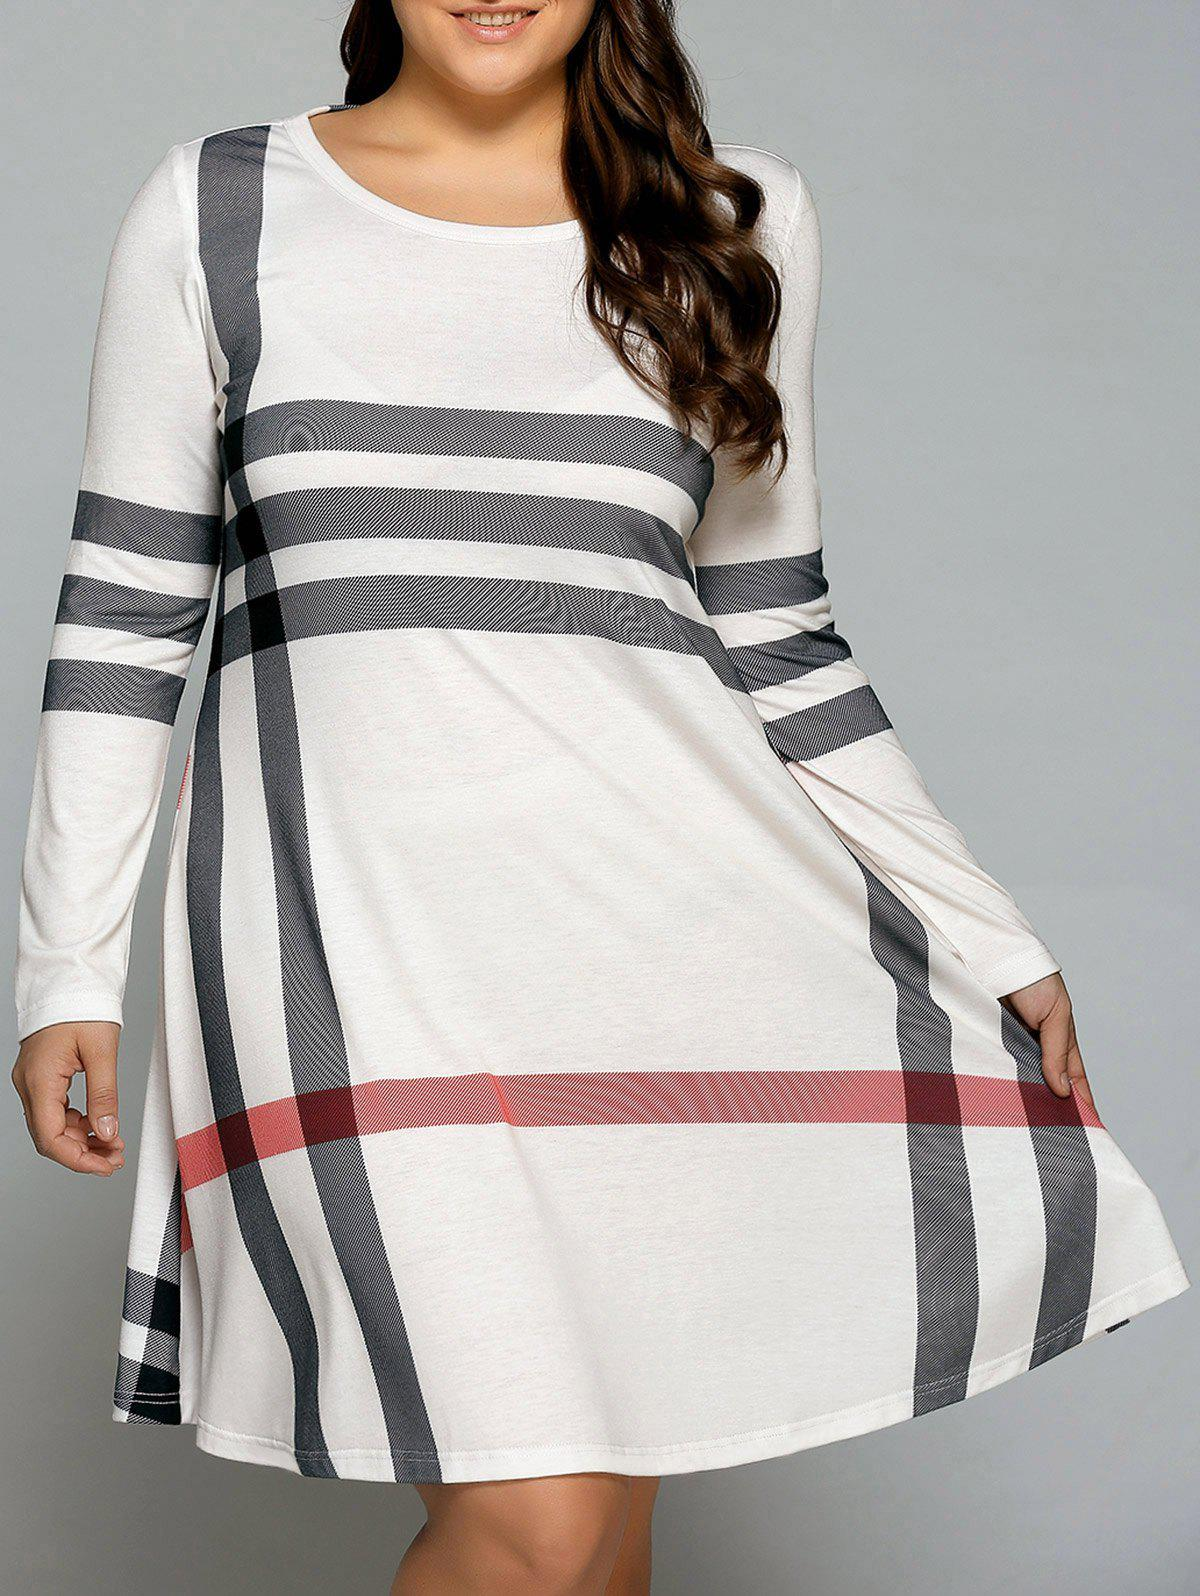 Casual Plus Size Vertical Striped T-Shirt Dress - OFF WHITE 2XL